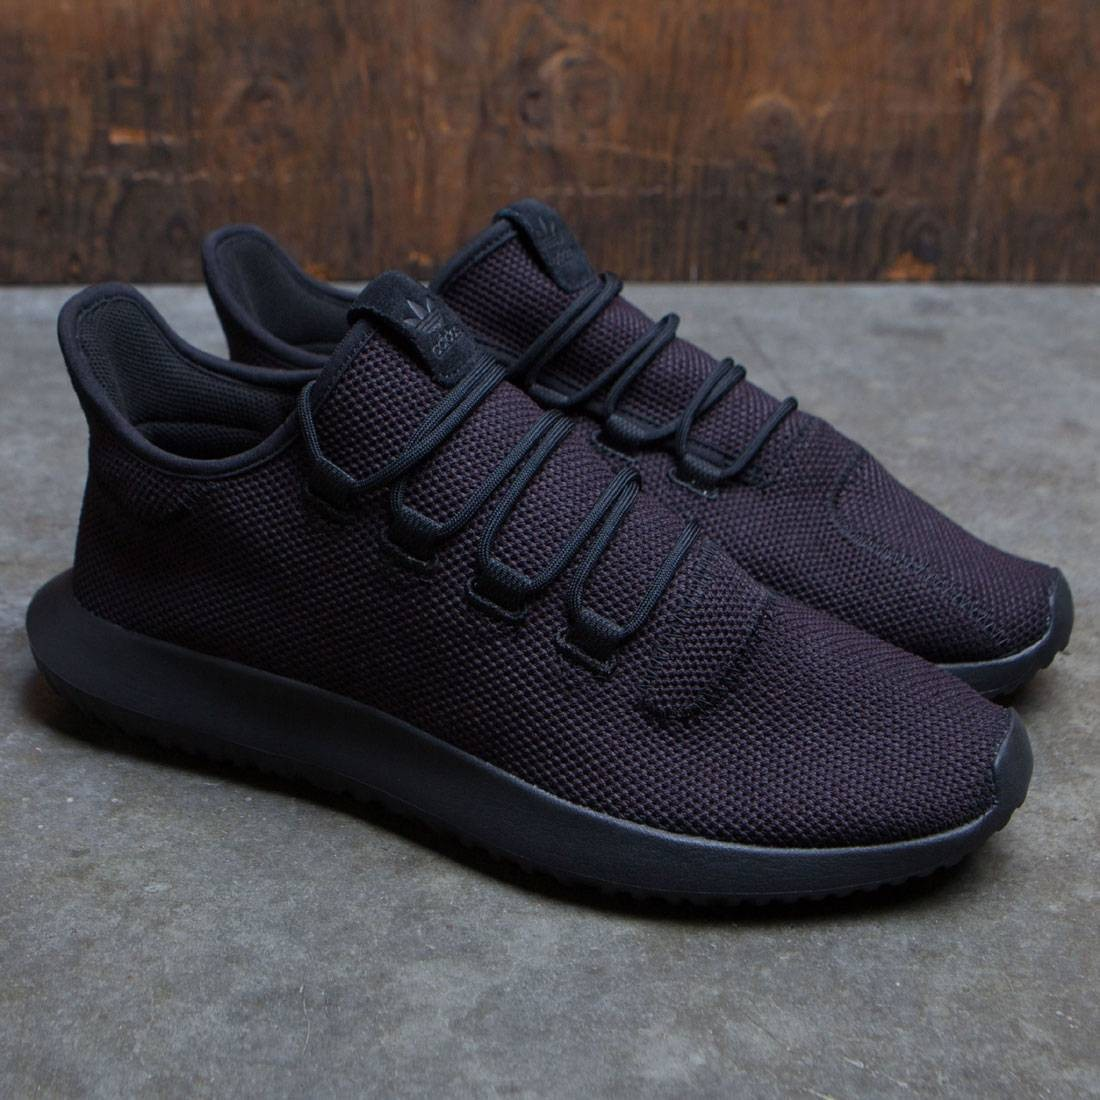 5ab6869c36a6 Adidas Men Tubular Shadow (black   footwear white   core black)